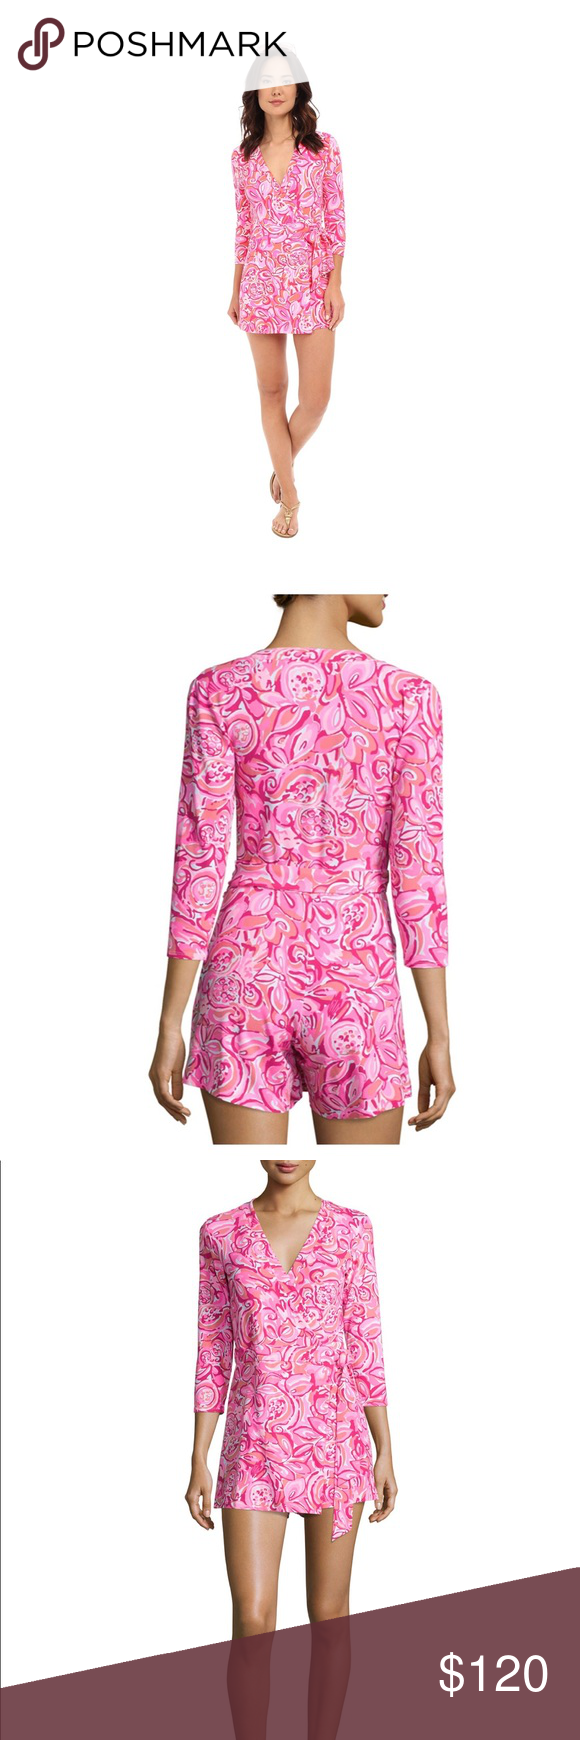 c0e228e4dd1 Lilly Pulitzer Karlie Romper in pink mango salsa NWT beautiful luxurious  romper. Flattering on all figures. Lilly Pulitzer Dresses